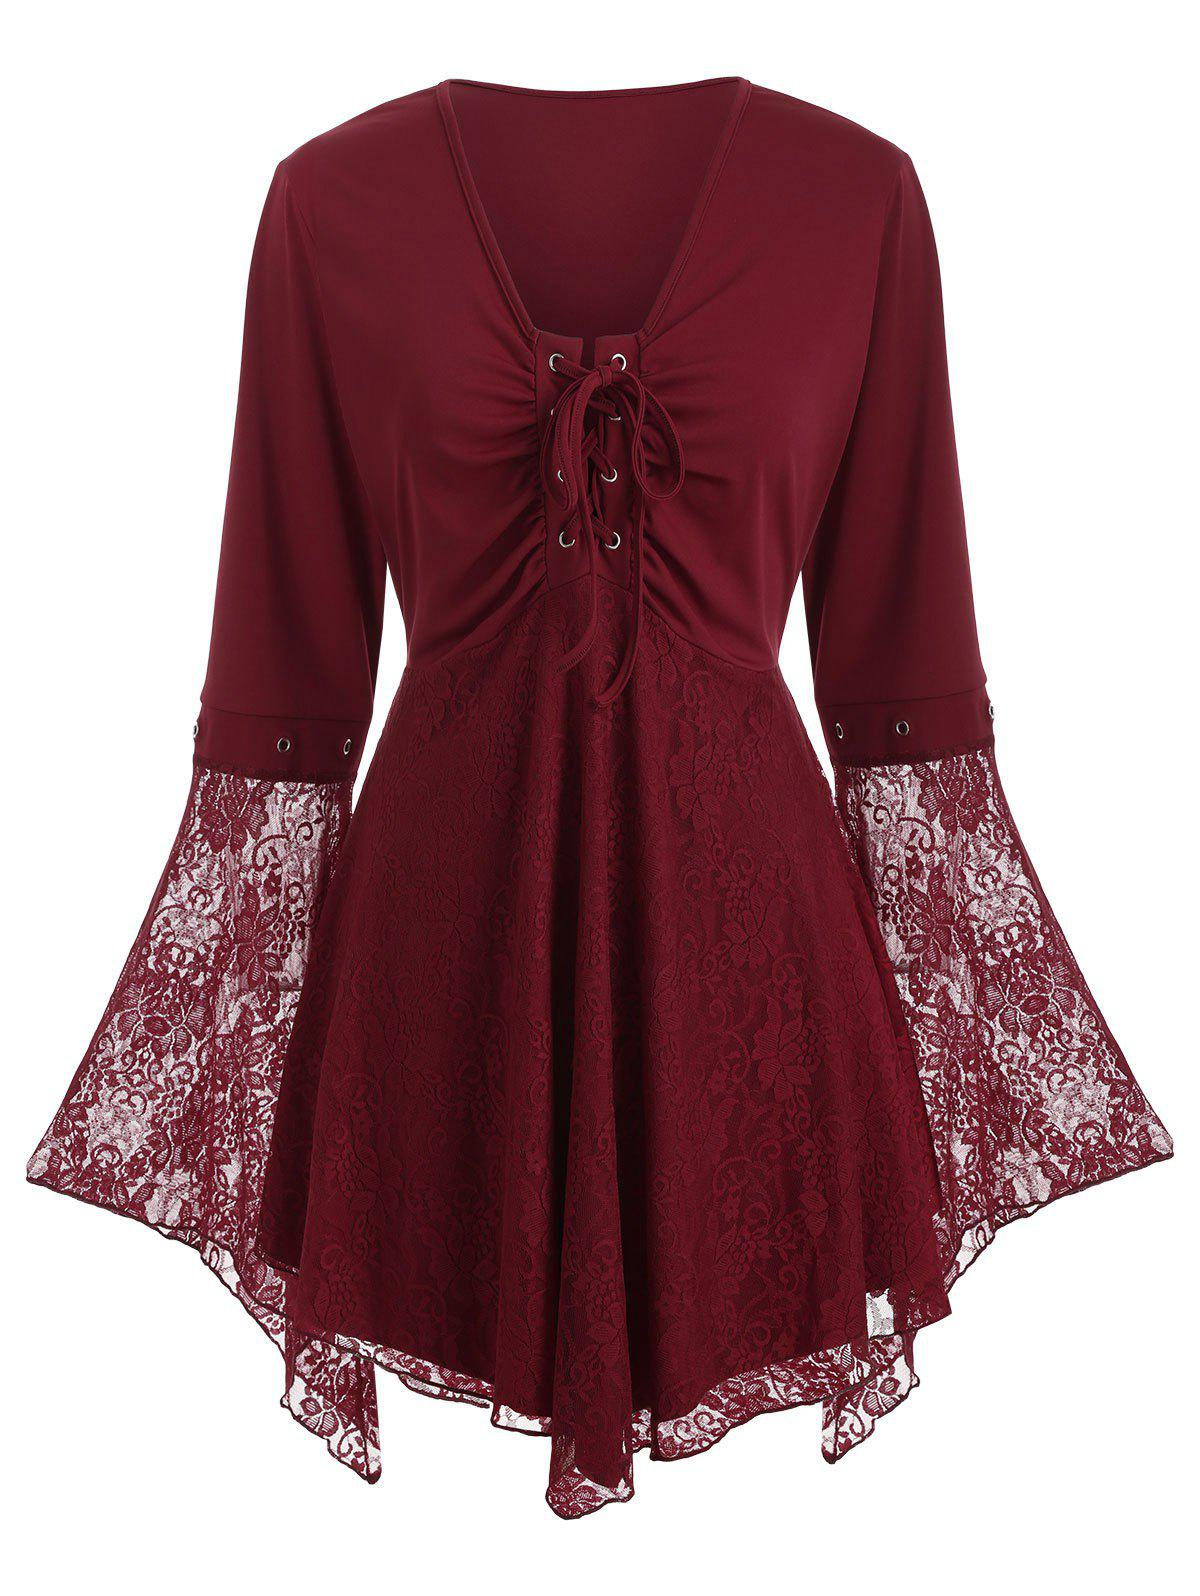 Plus Size Lace Up Lace Insert Flare Sleeve Top - RED WINE L